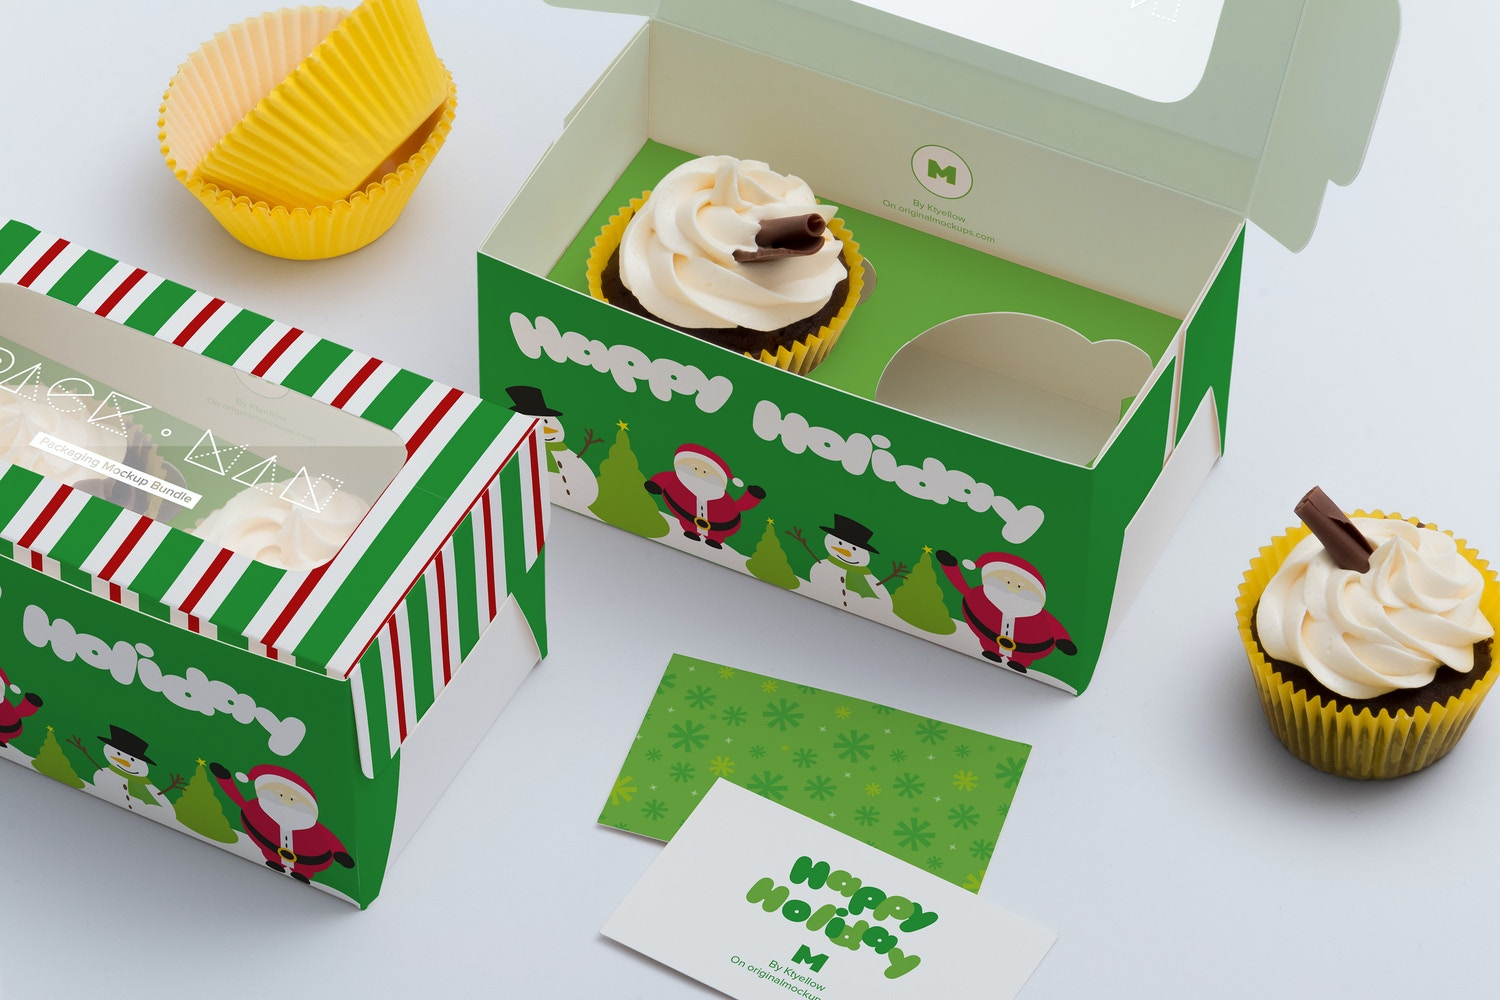 Two Cupcake Box Mockup 03 by Ktyellow  on Original Mockups